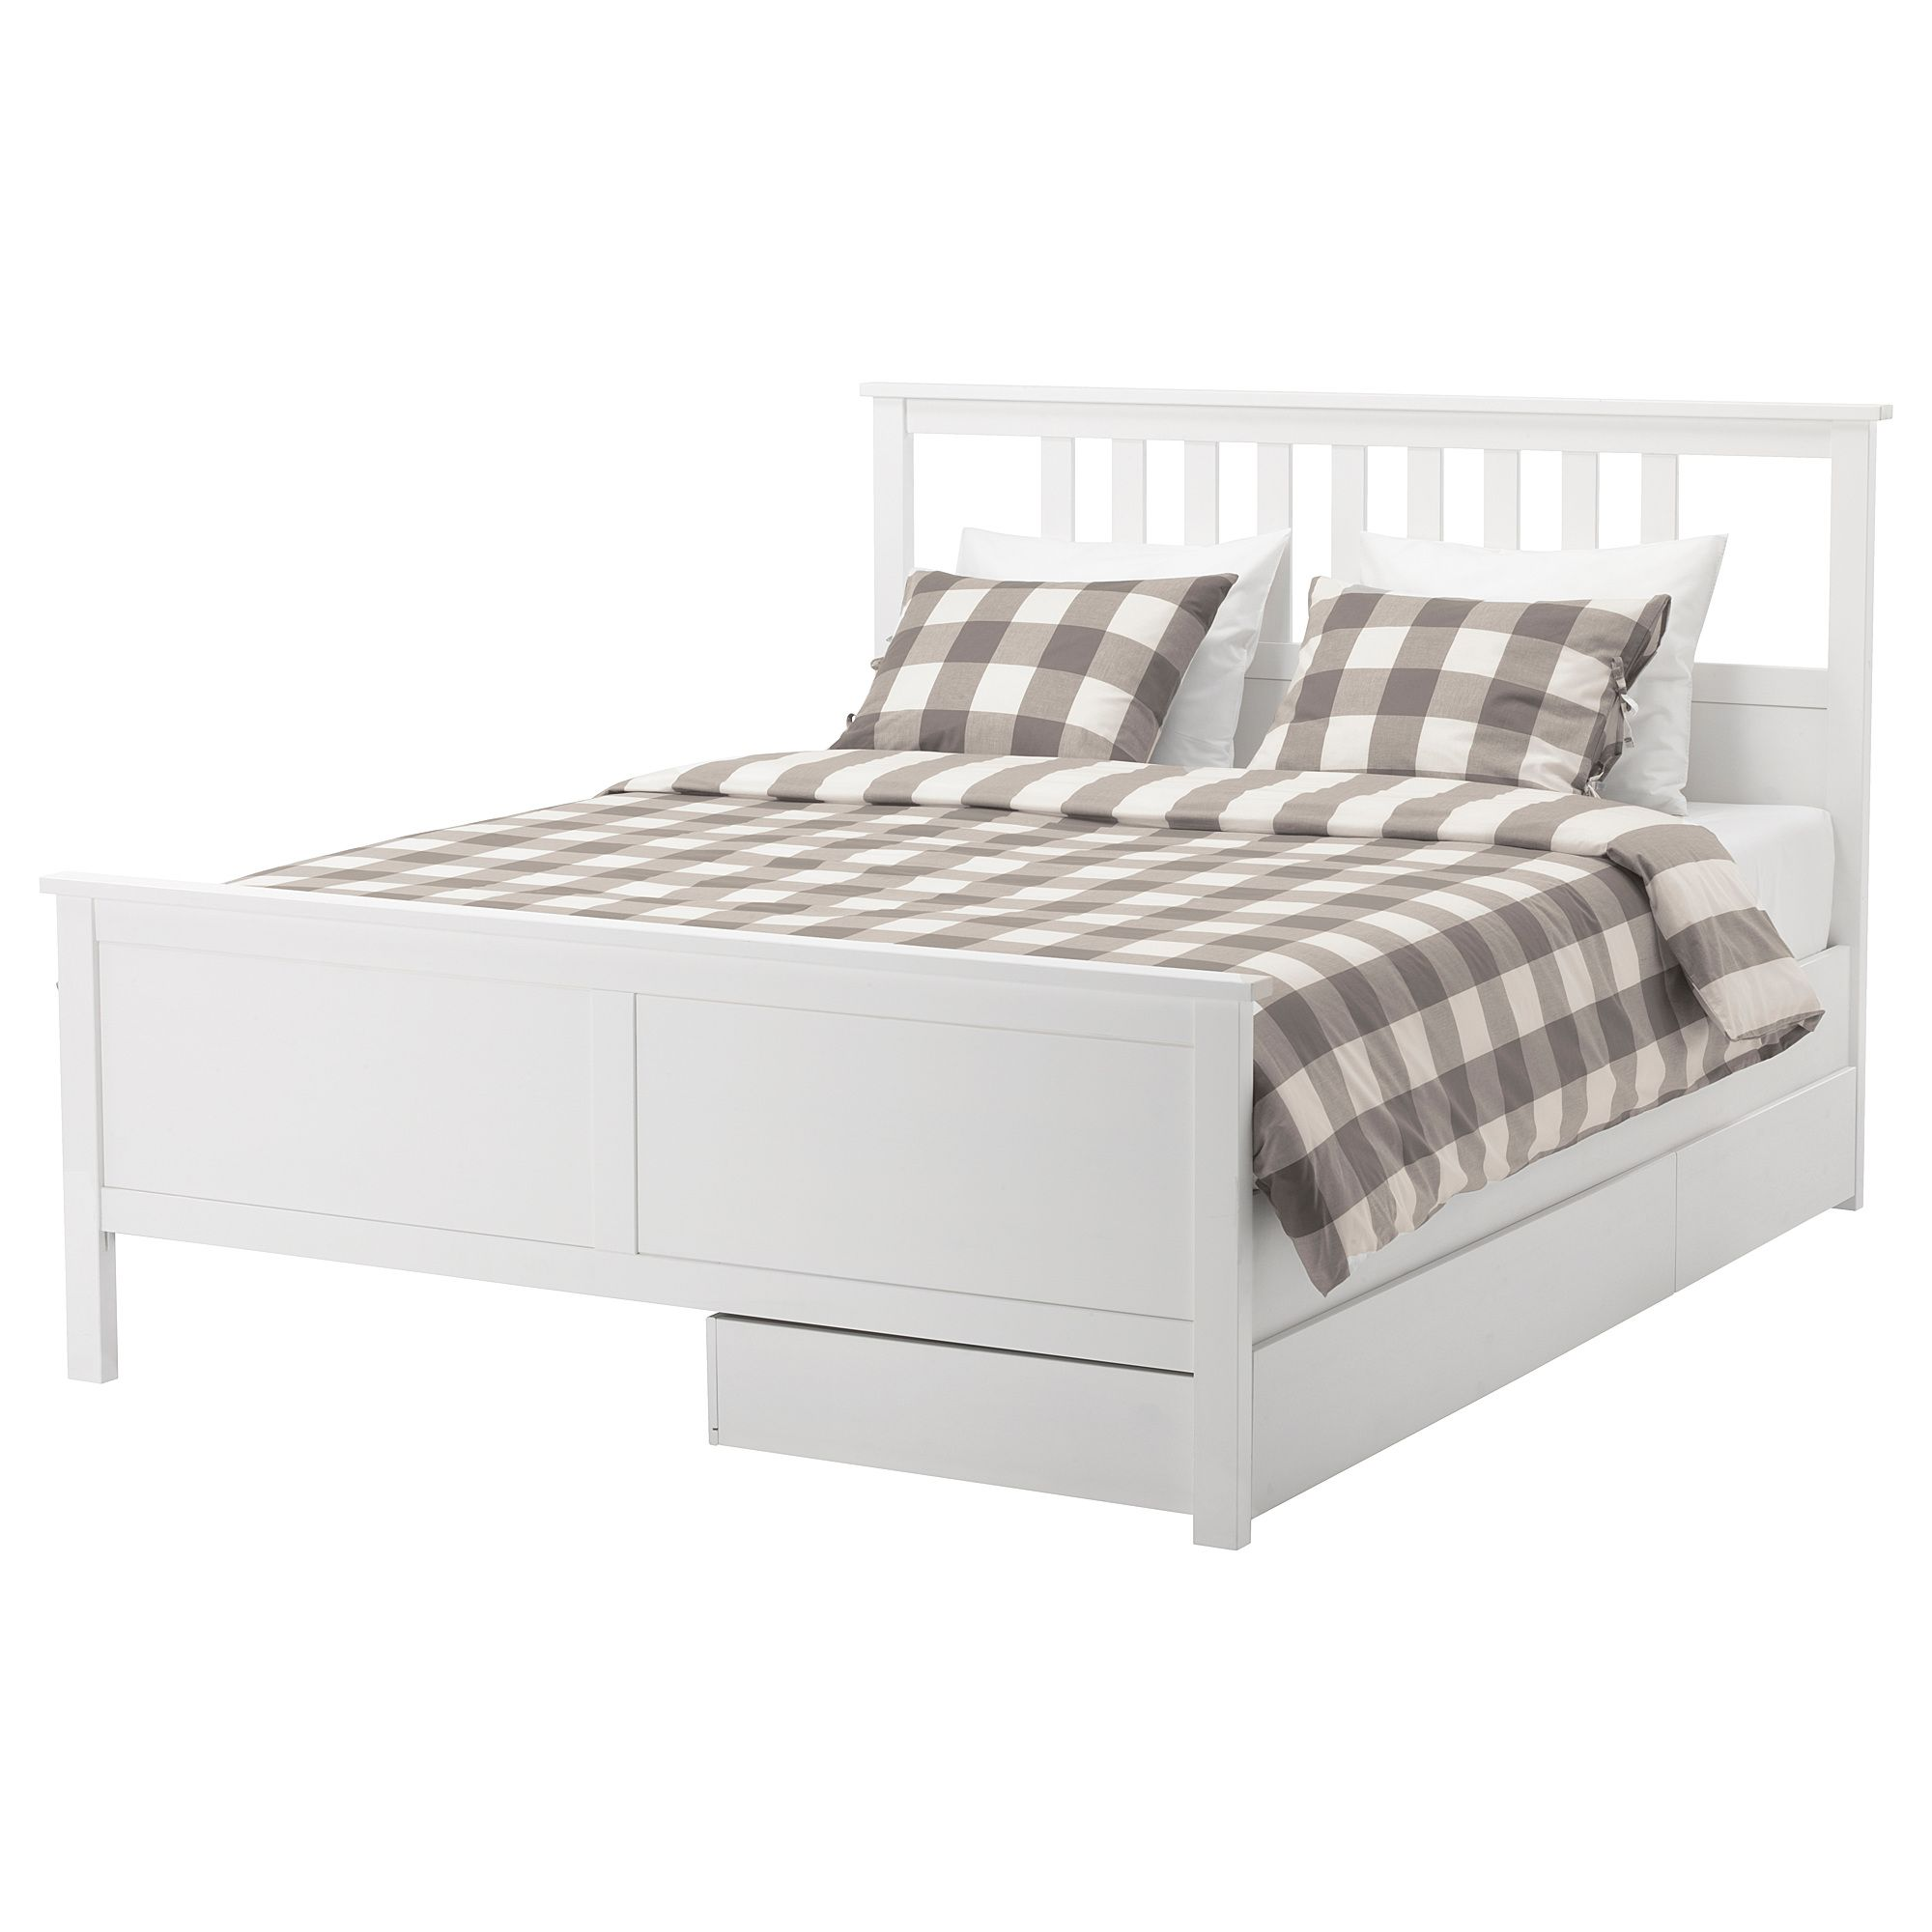 Hemnes Bed Frame With 2 Storage Boxes White Stain Lonset Queen